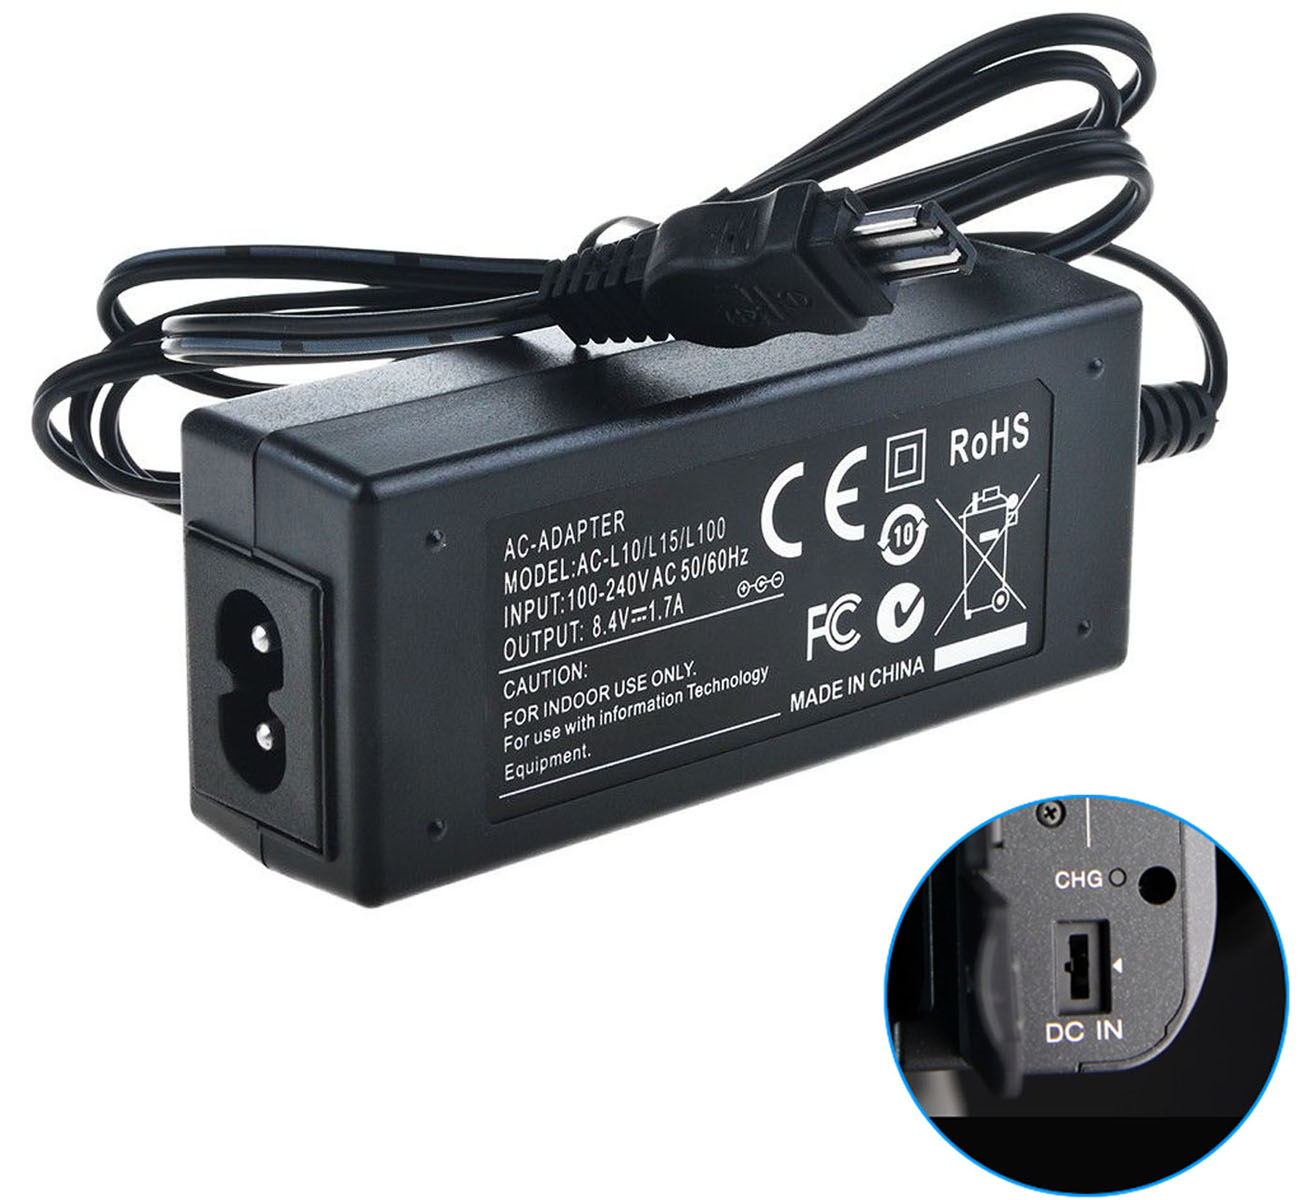 HVR-HD1000U HVR-HD1000P HDV Camcorder LCD Battery Charger for Sony HVR-HD1000 HVR-HD1000E